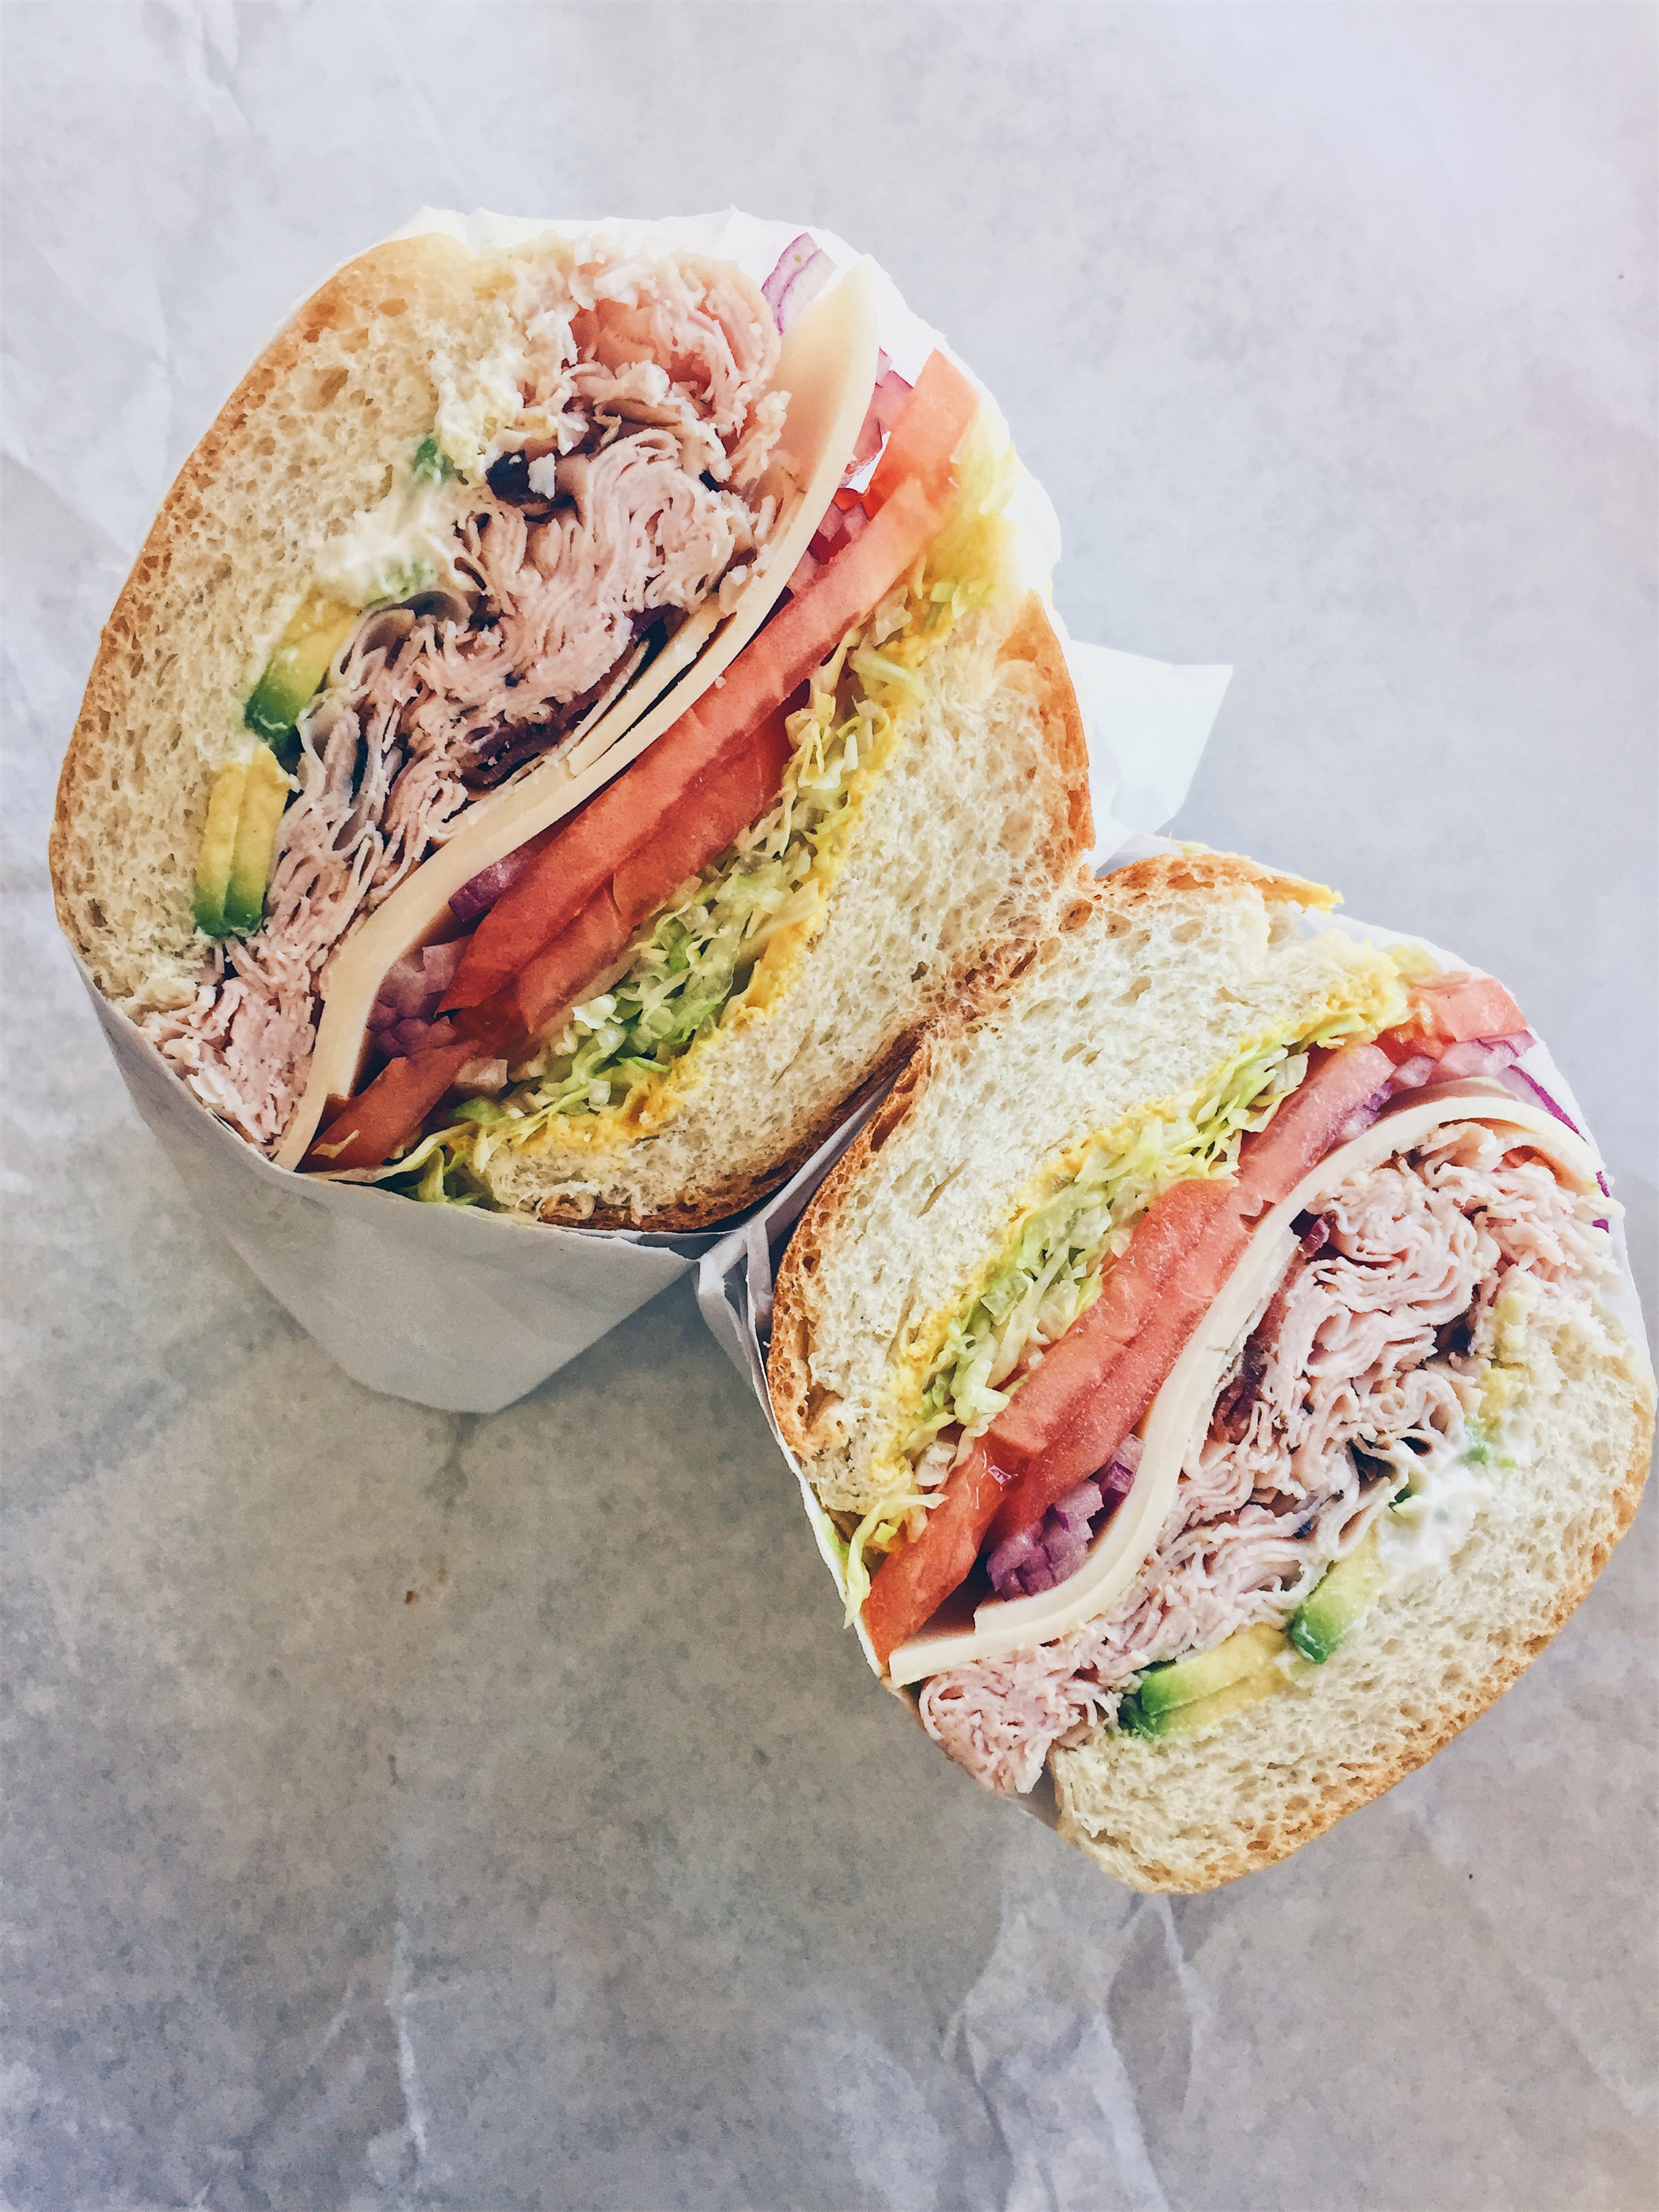 Los Angeles, USA - Mike's Deli / Boar Head - The Classic Club (Specialty Sandwiches) - helloteri